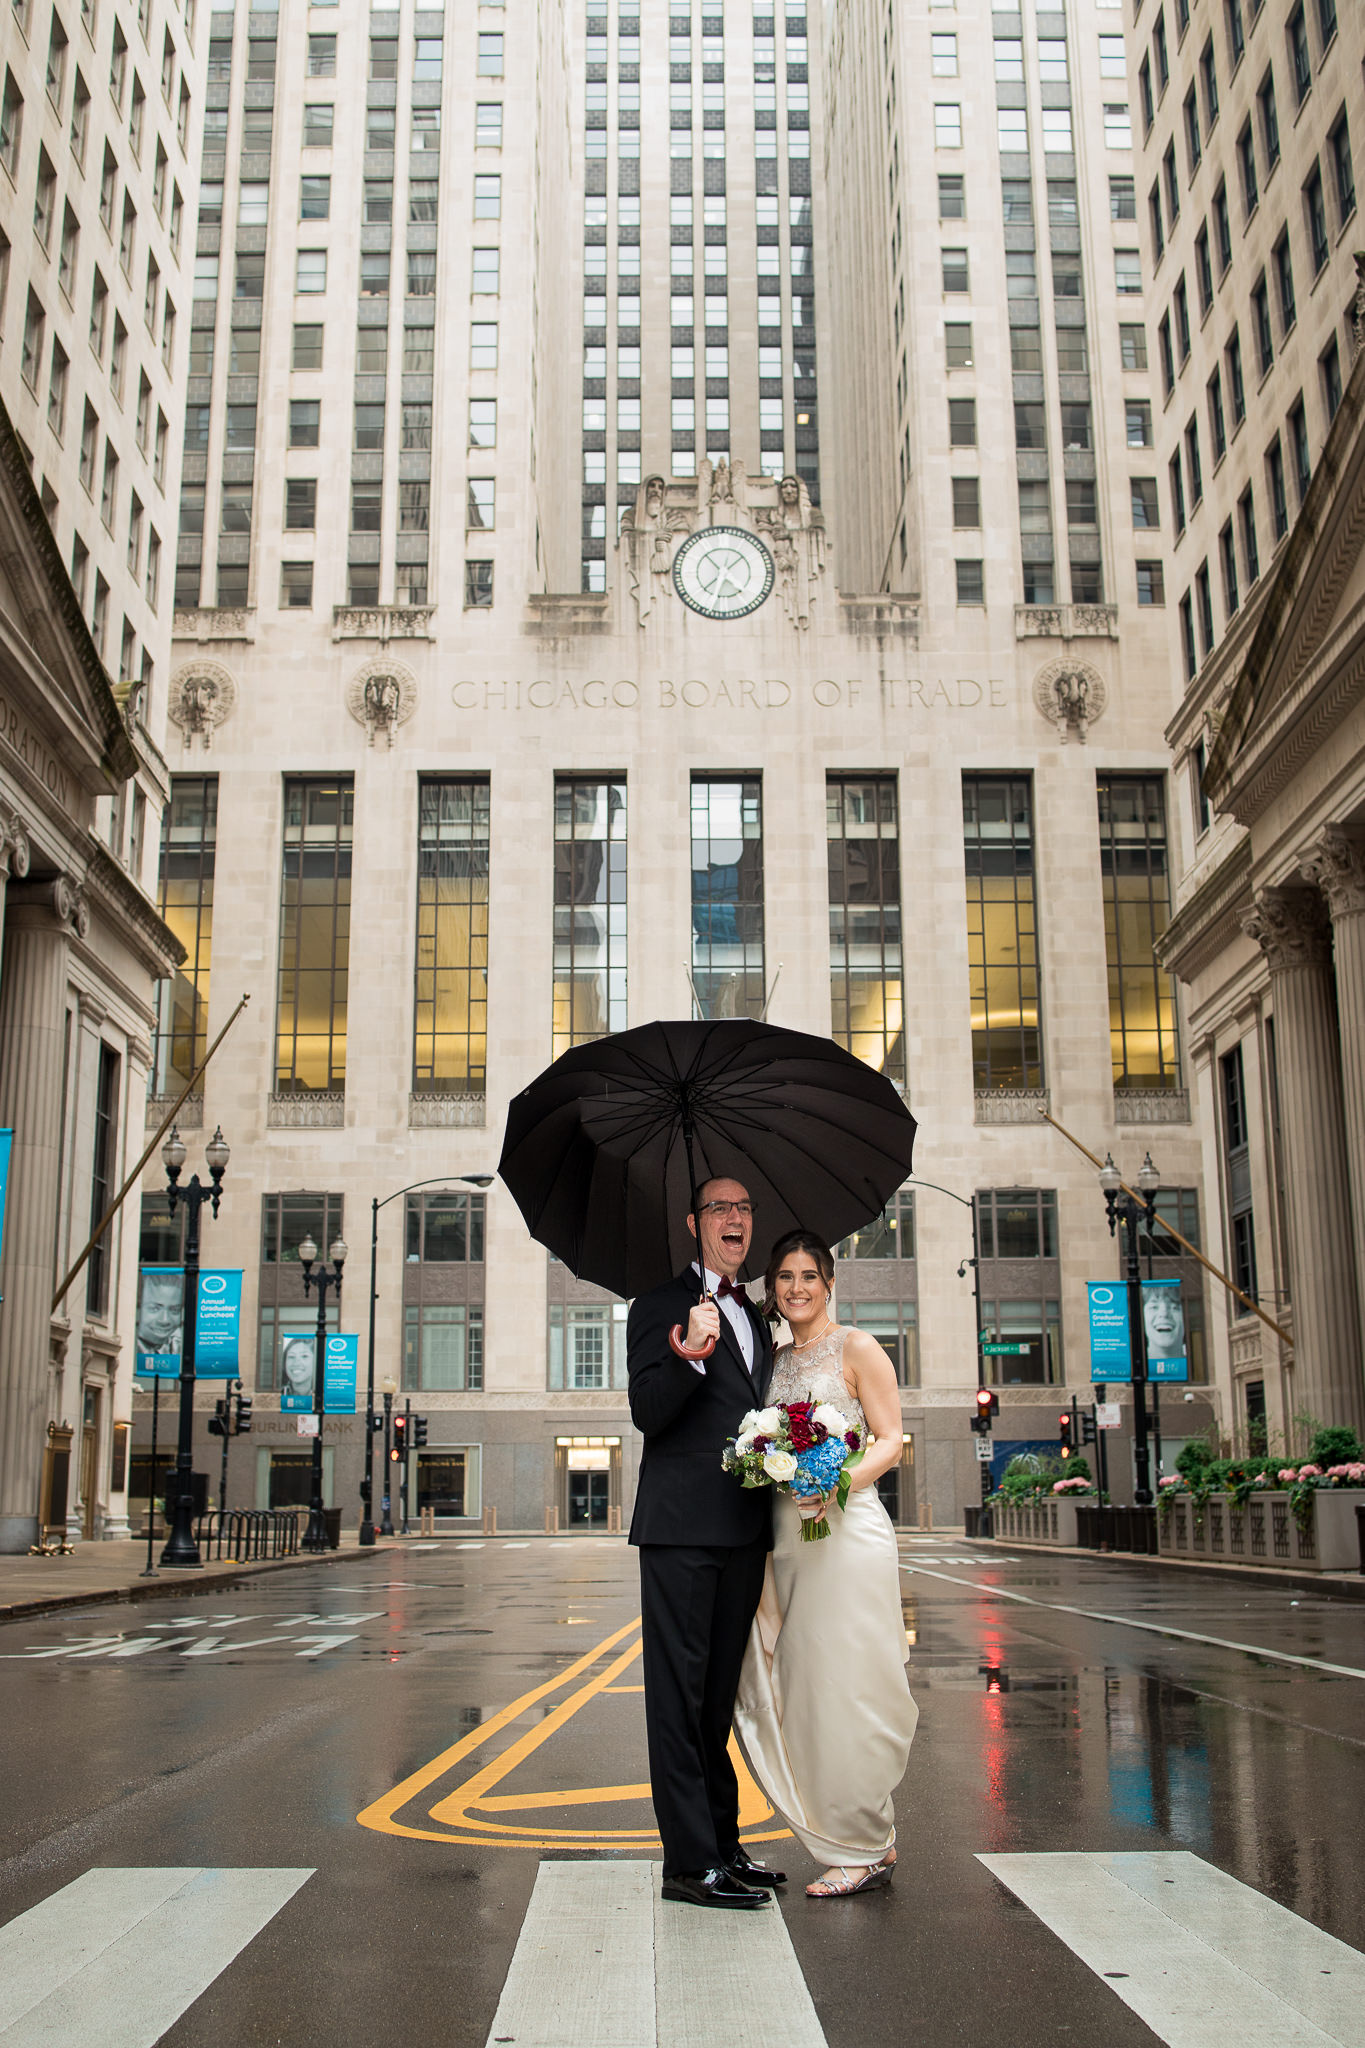 Raining in Front of the Chicago Board of Trade Building